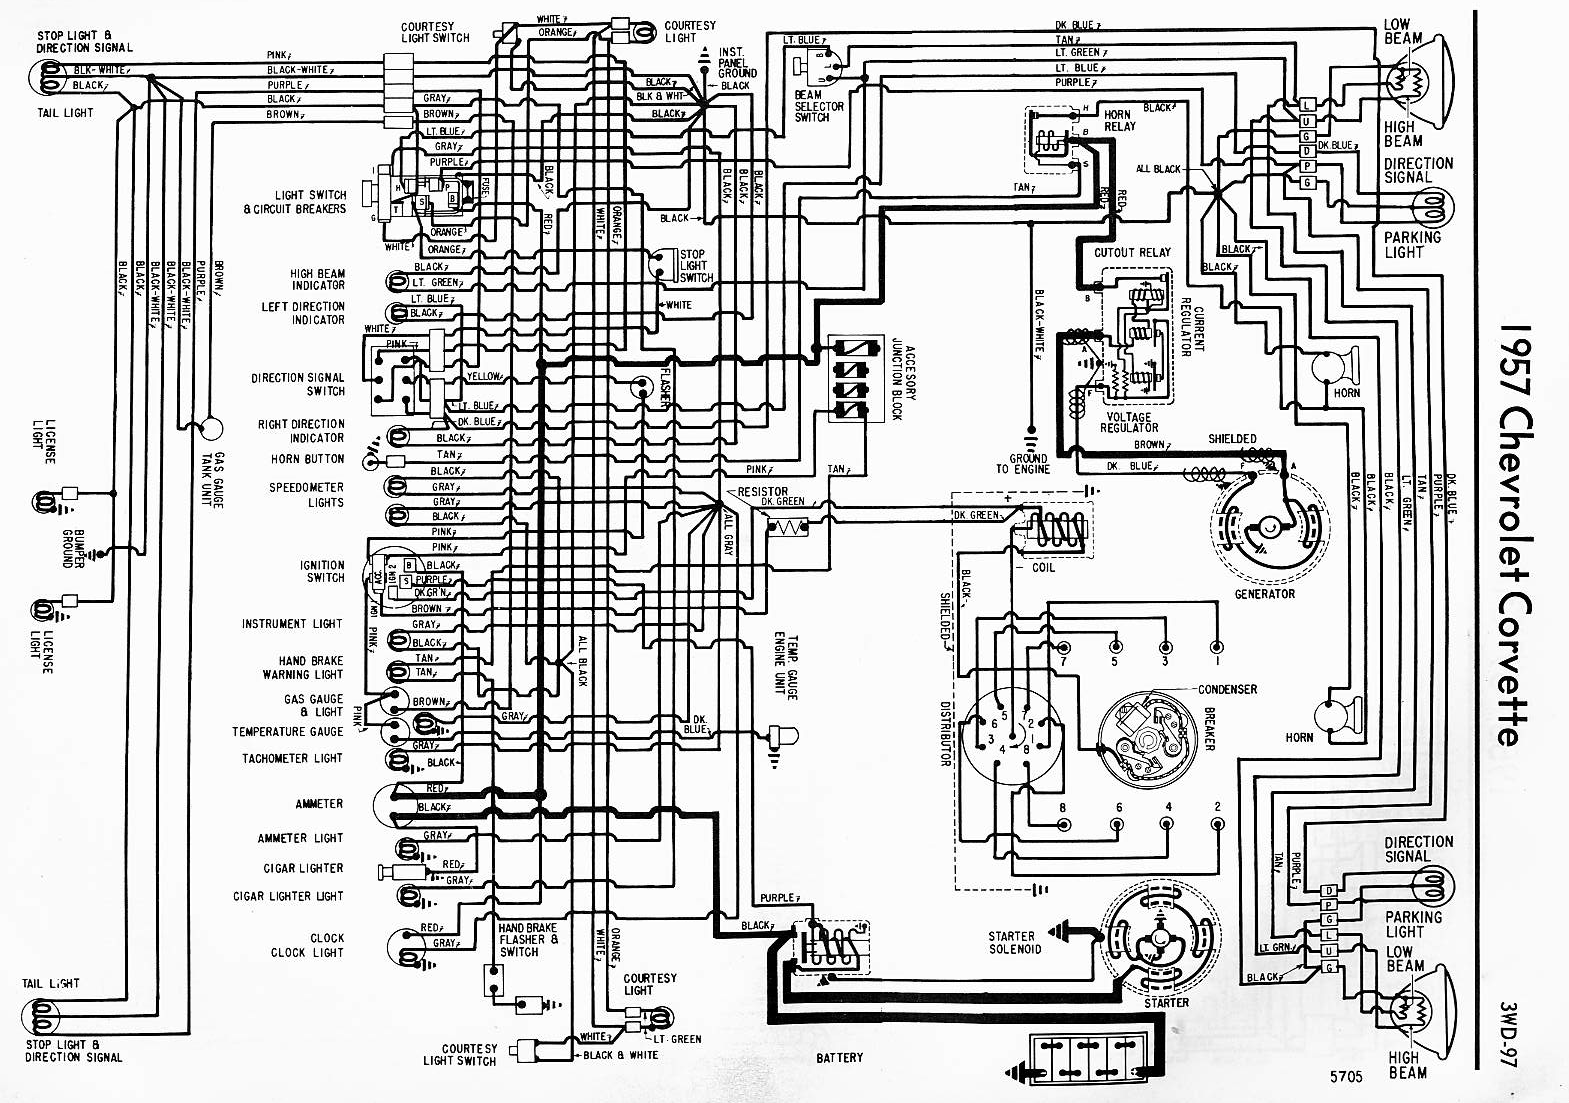 68 Corvette Wiring Schematic - Evo 8 Radio Wiring Diagram for Wiring  Diagram Schematics